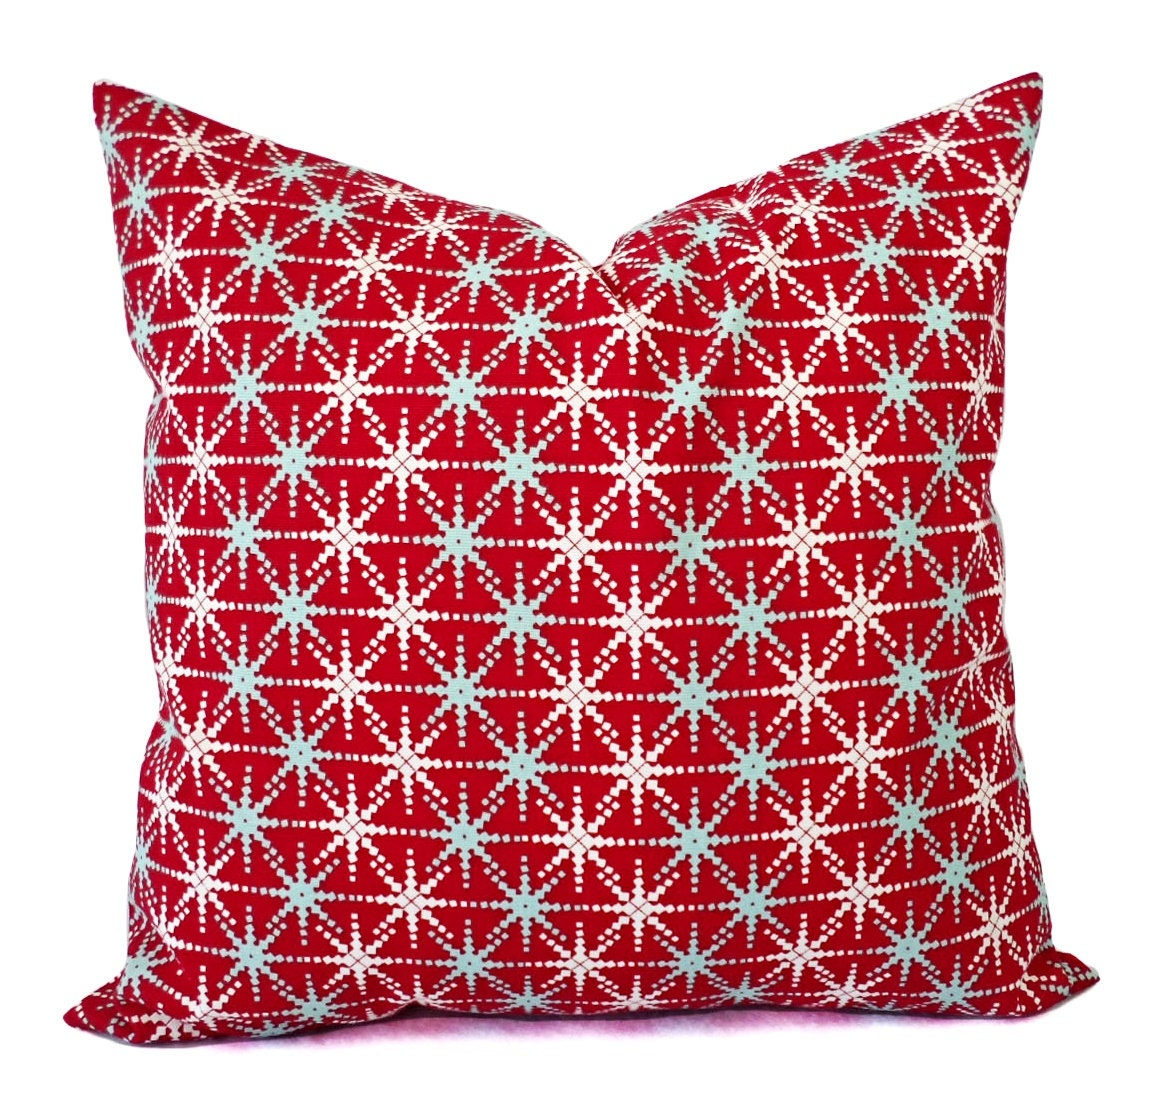 Christmas Pillows Red And White Pillow Cover Holiday